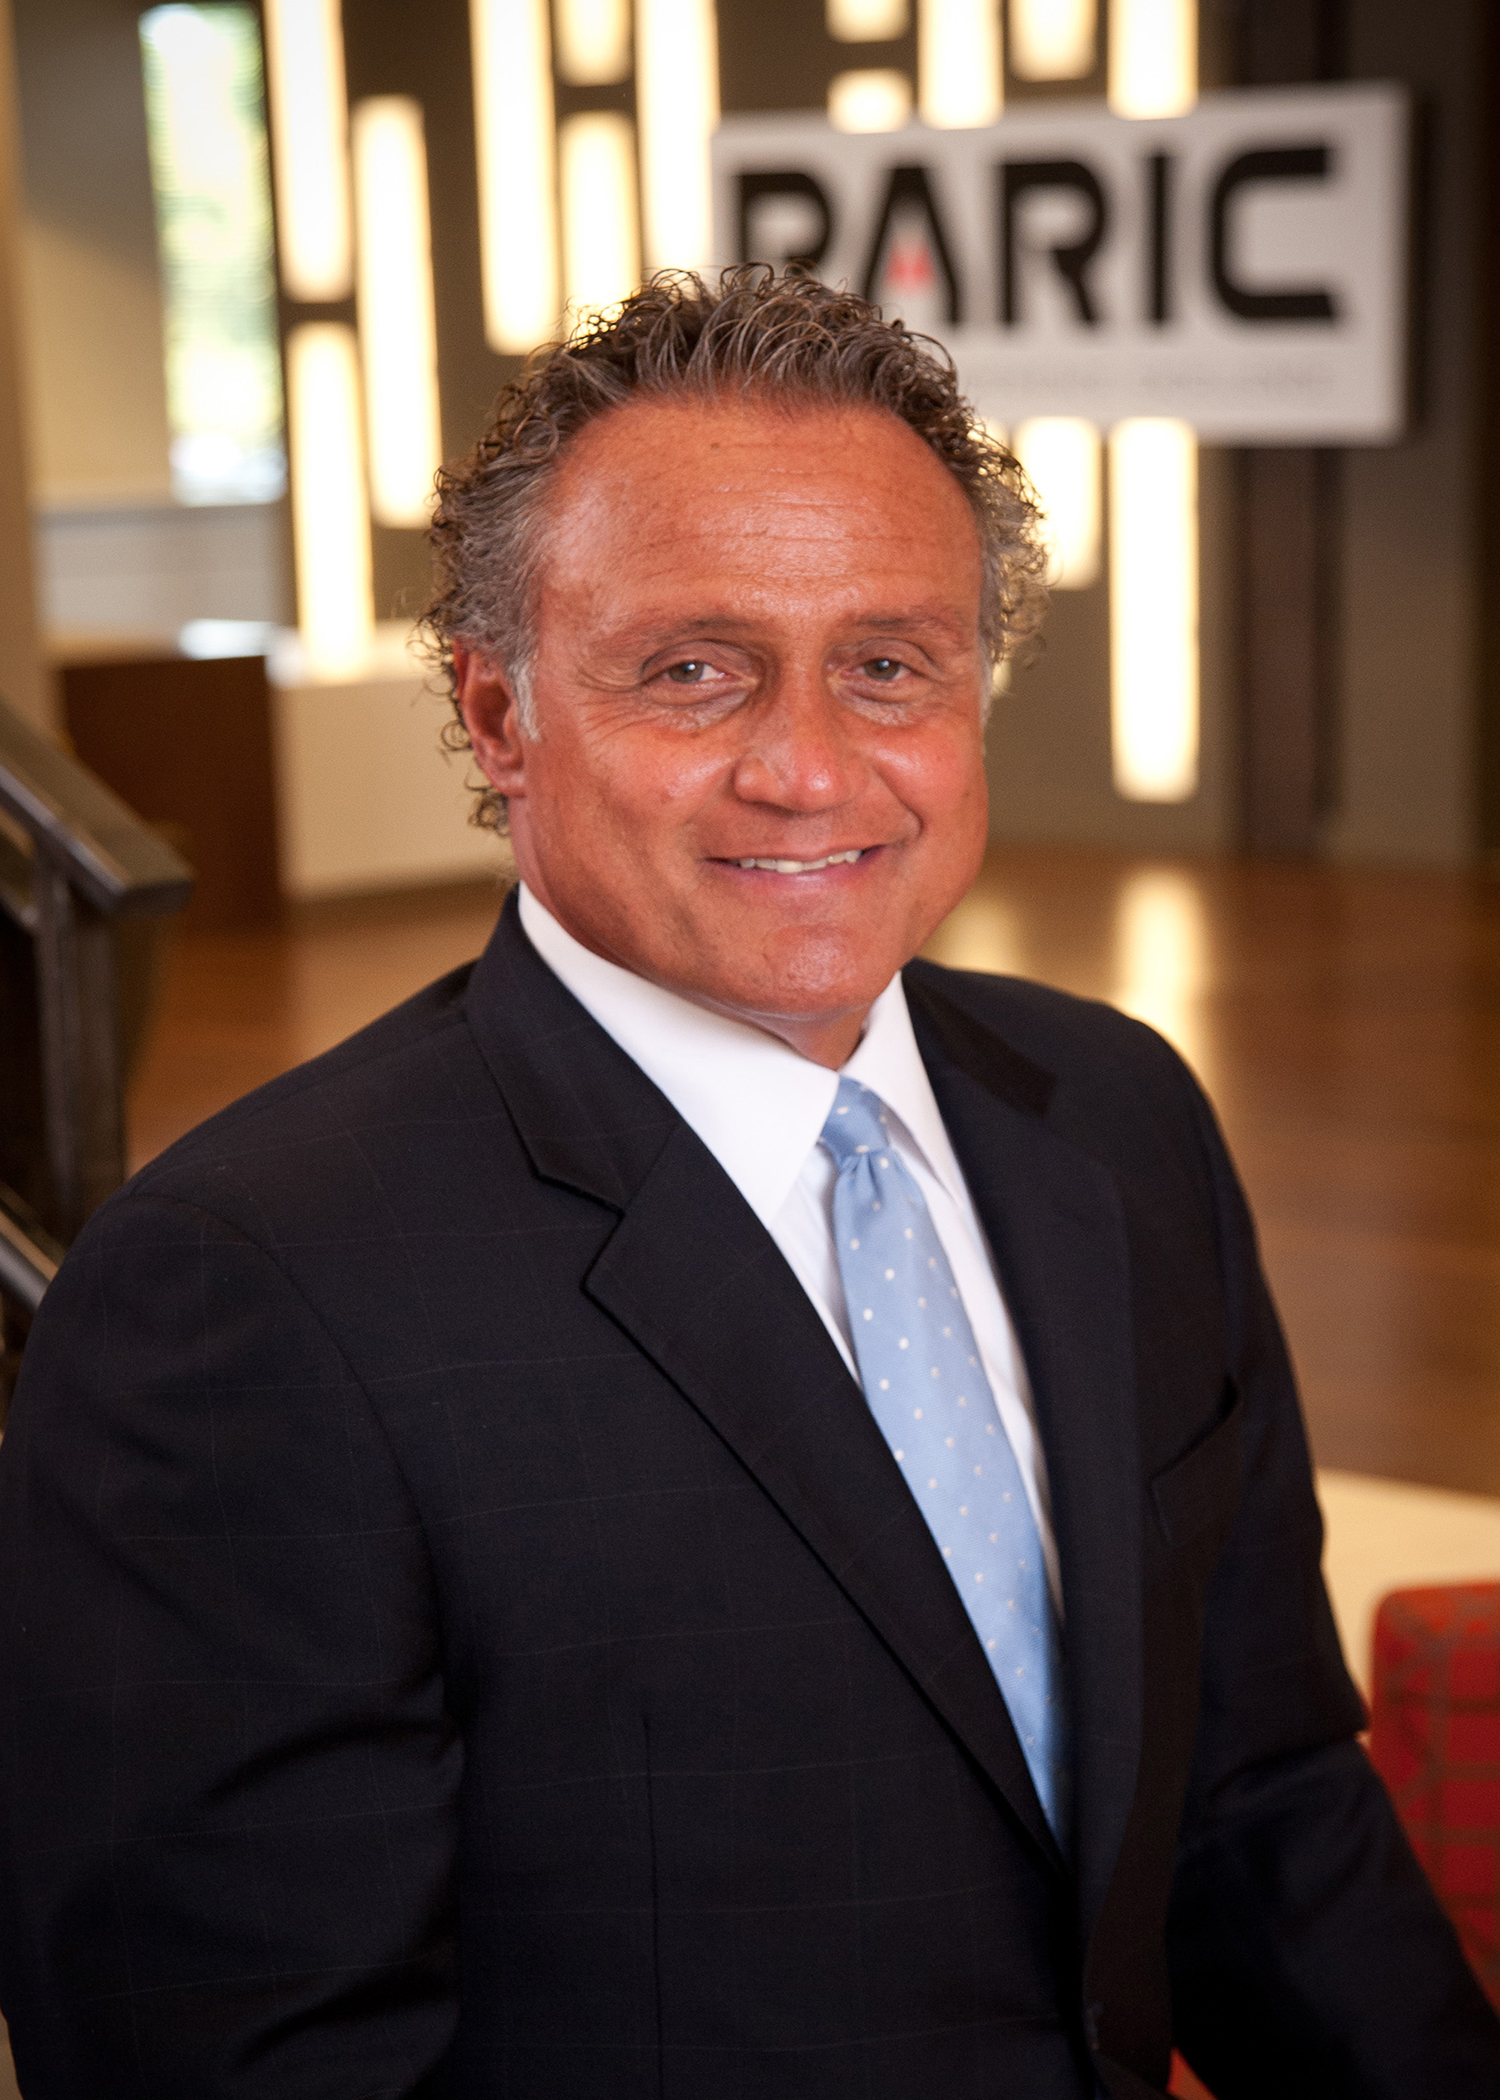 Michael Rallo Sr. is the Senior Vice President at PARIC Corporation and reports to the president